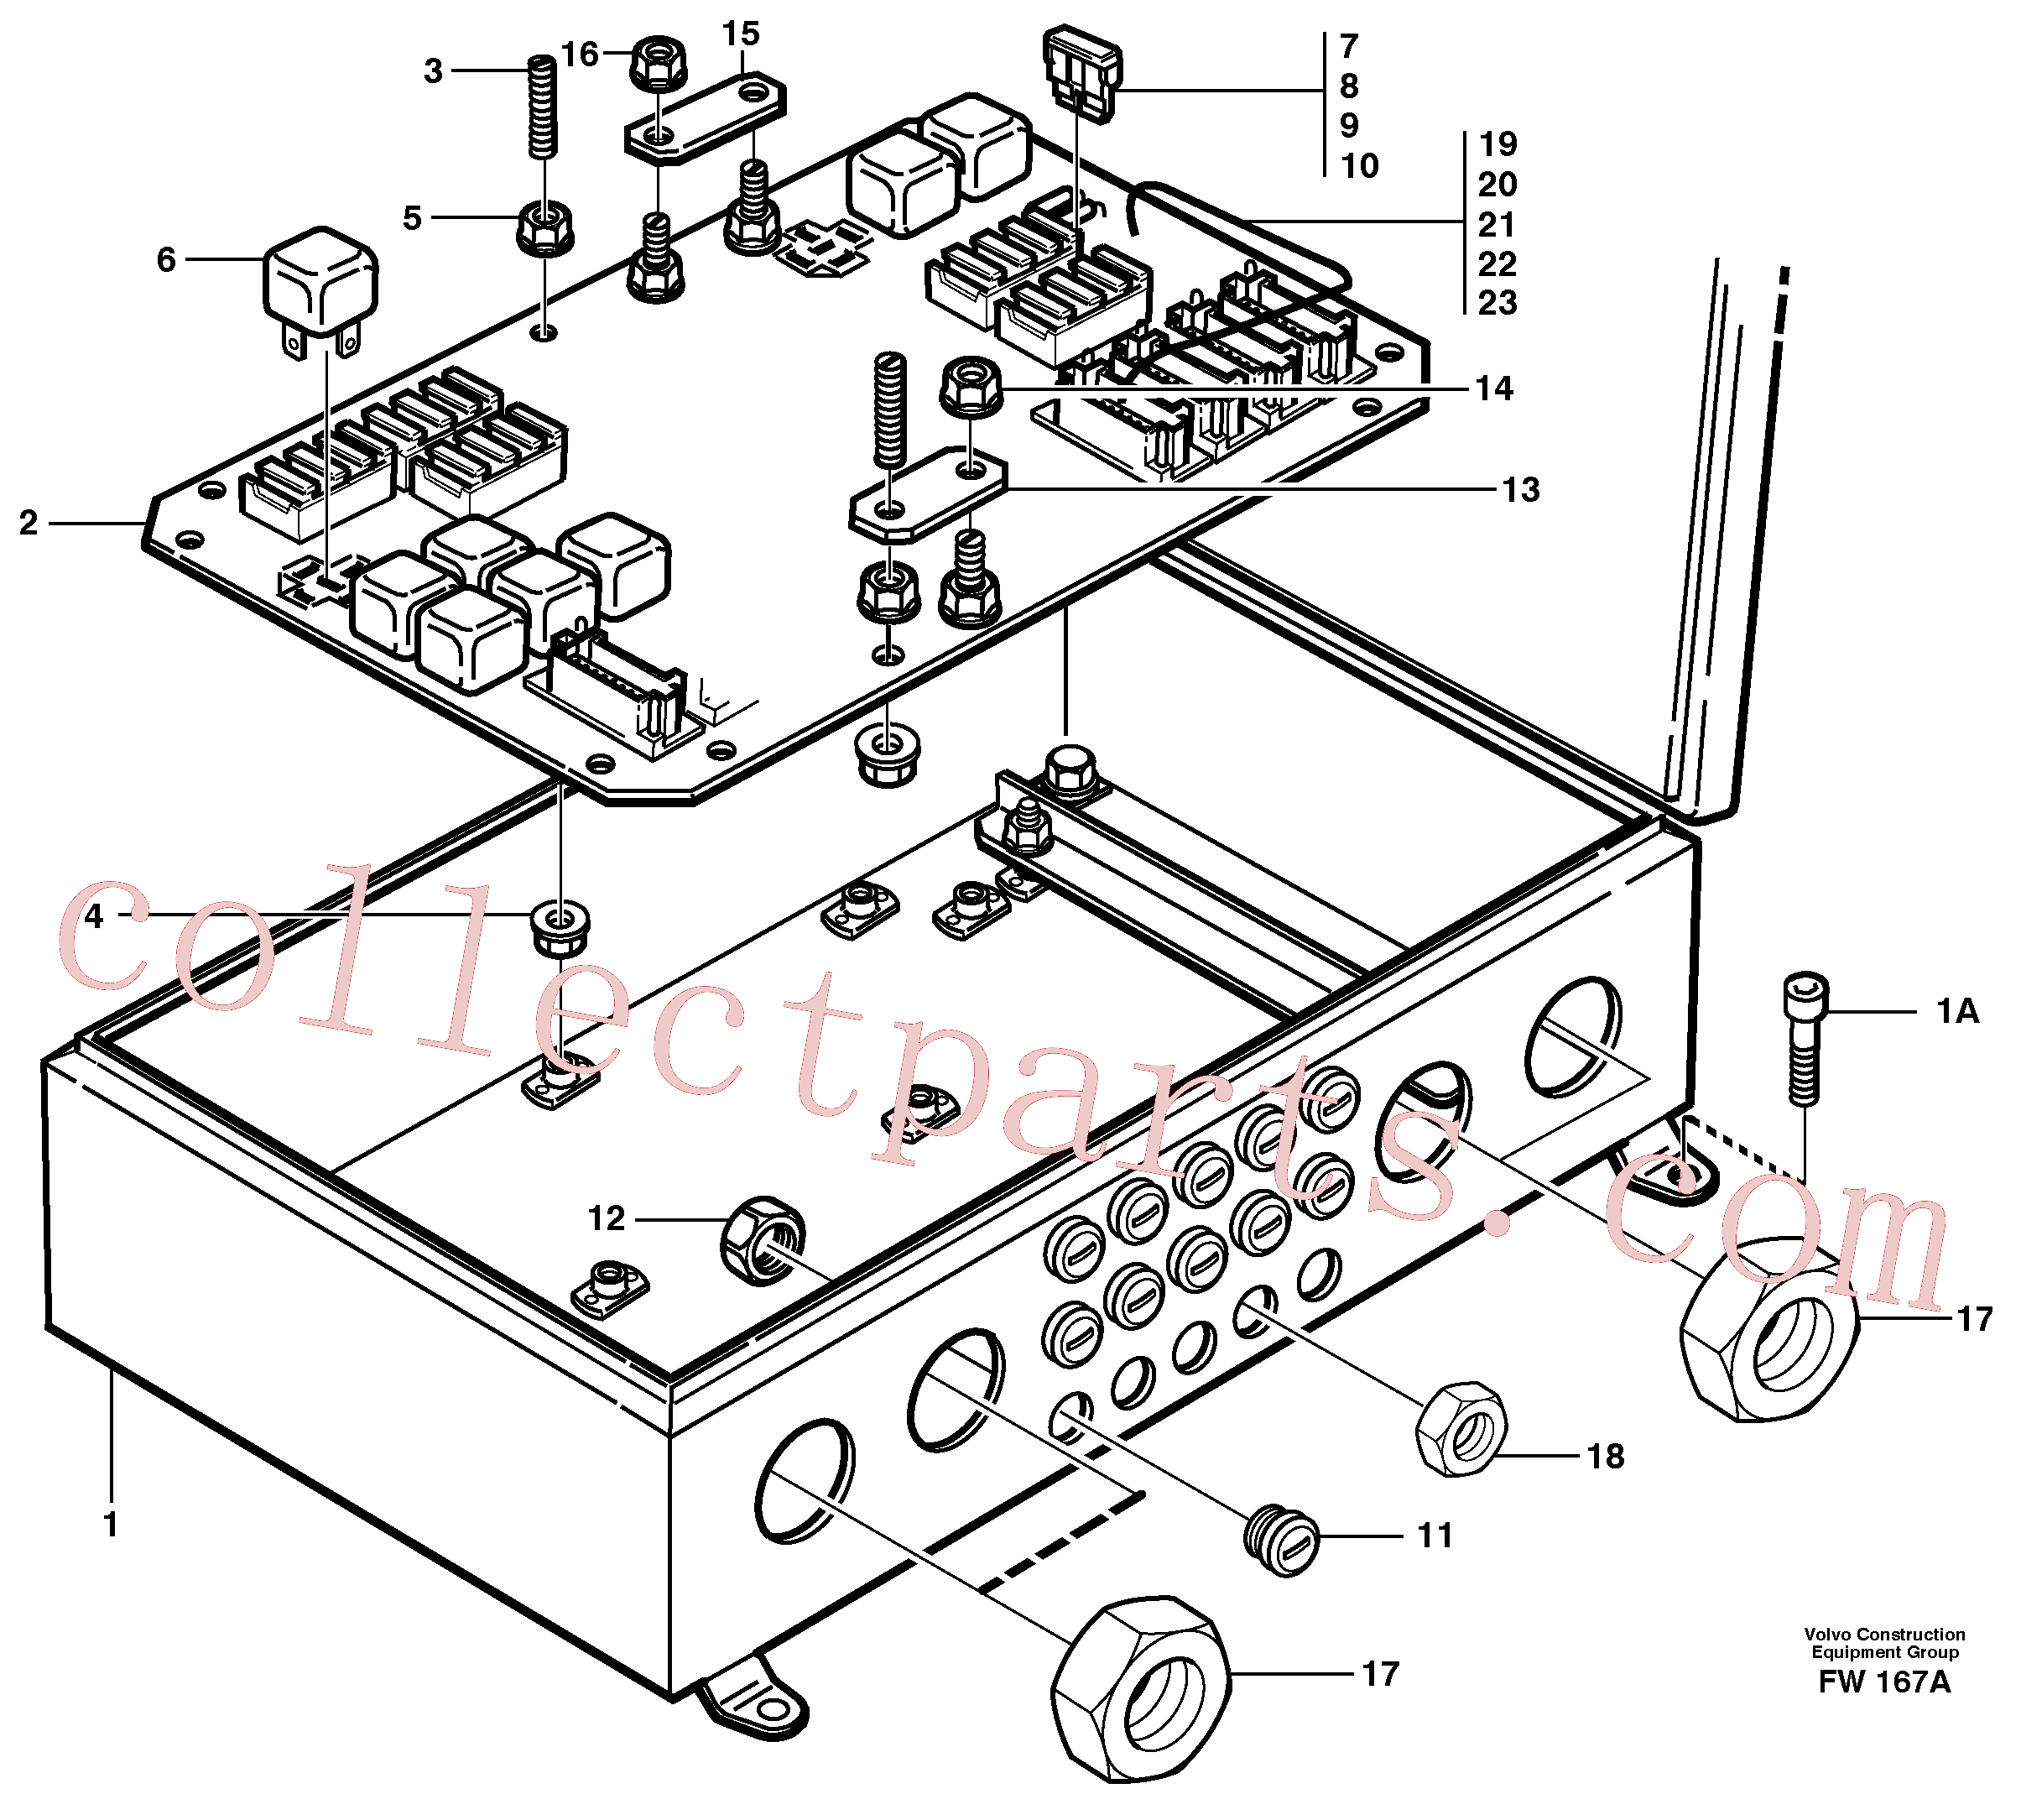 VOE970776 for Volvo Electrical distribution box(FW167A assembly)